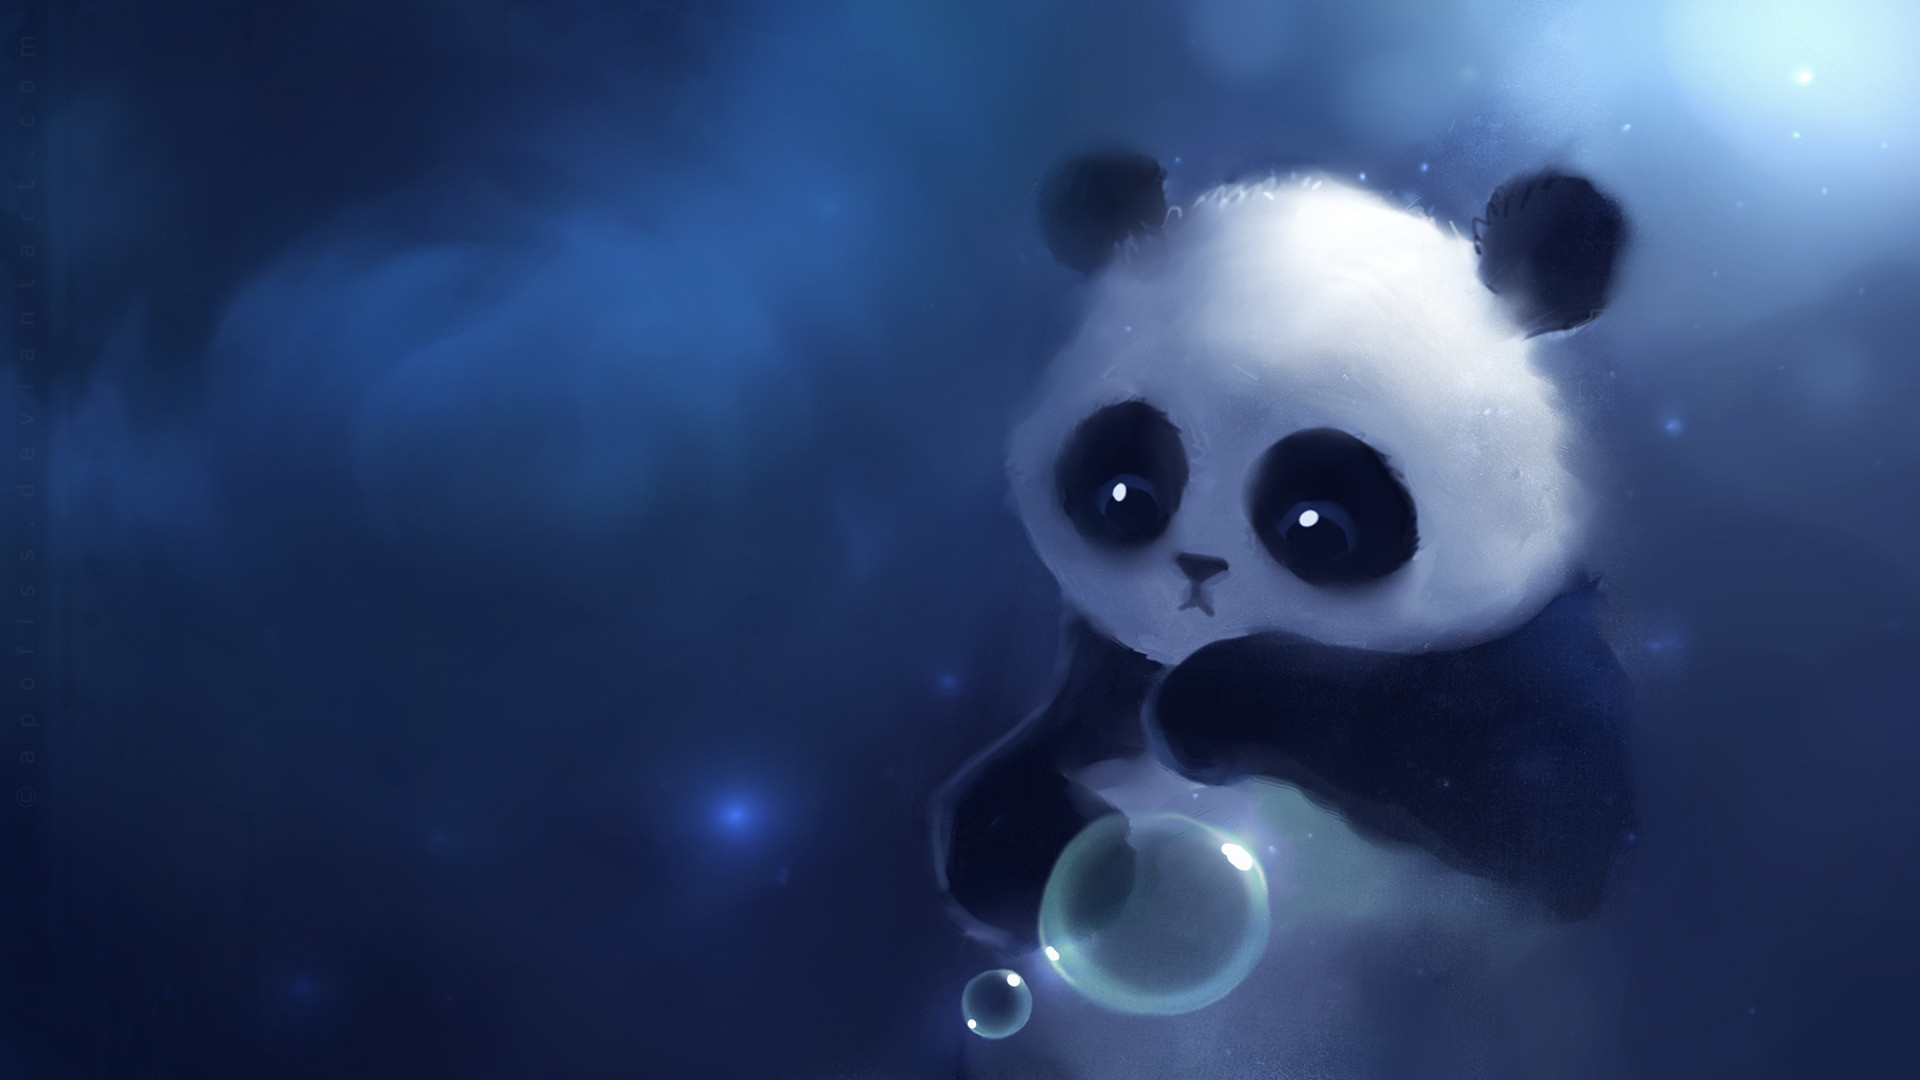 Sleeping Cute Baby Wallpaper Animated Panda Wallpaper 68 Images